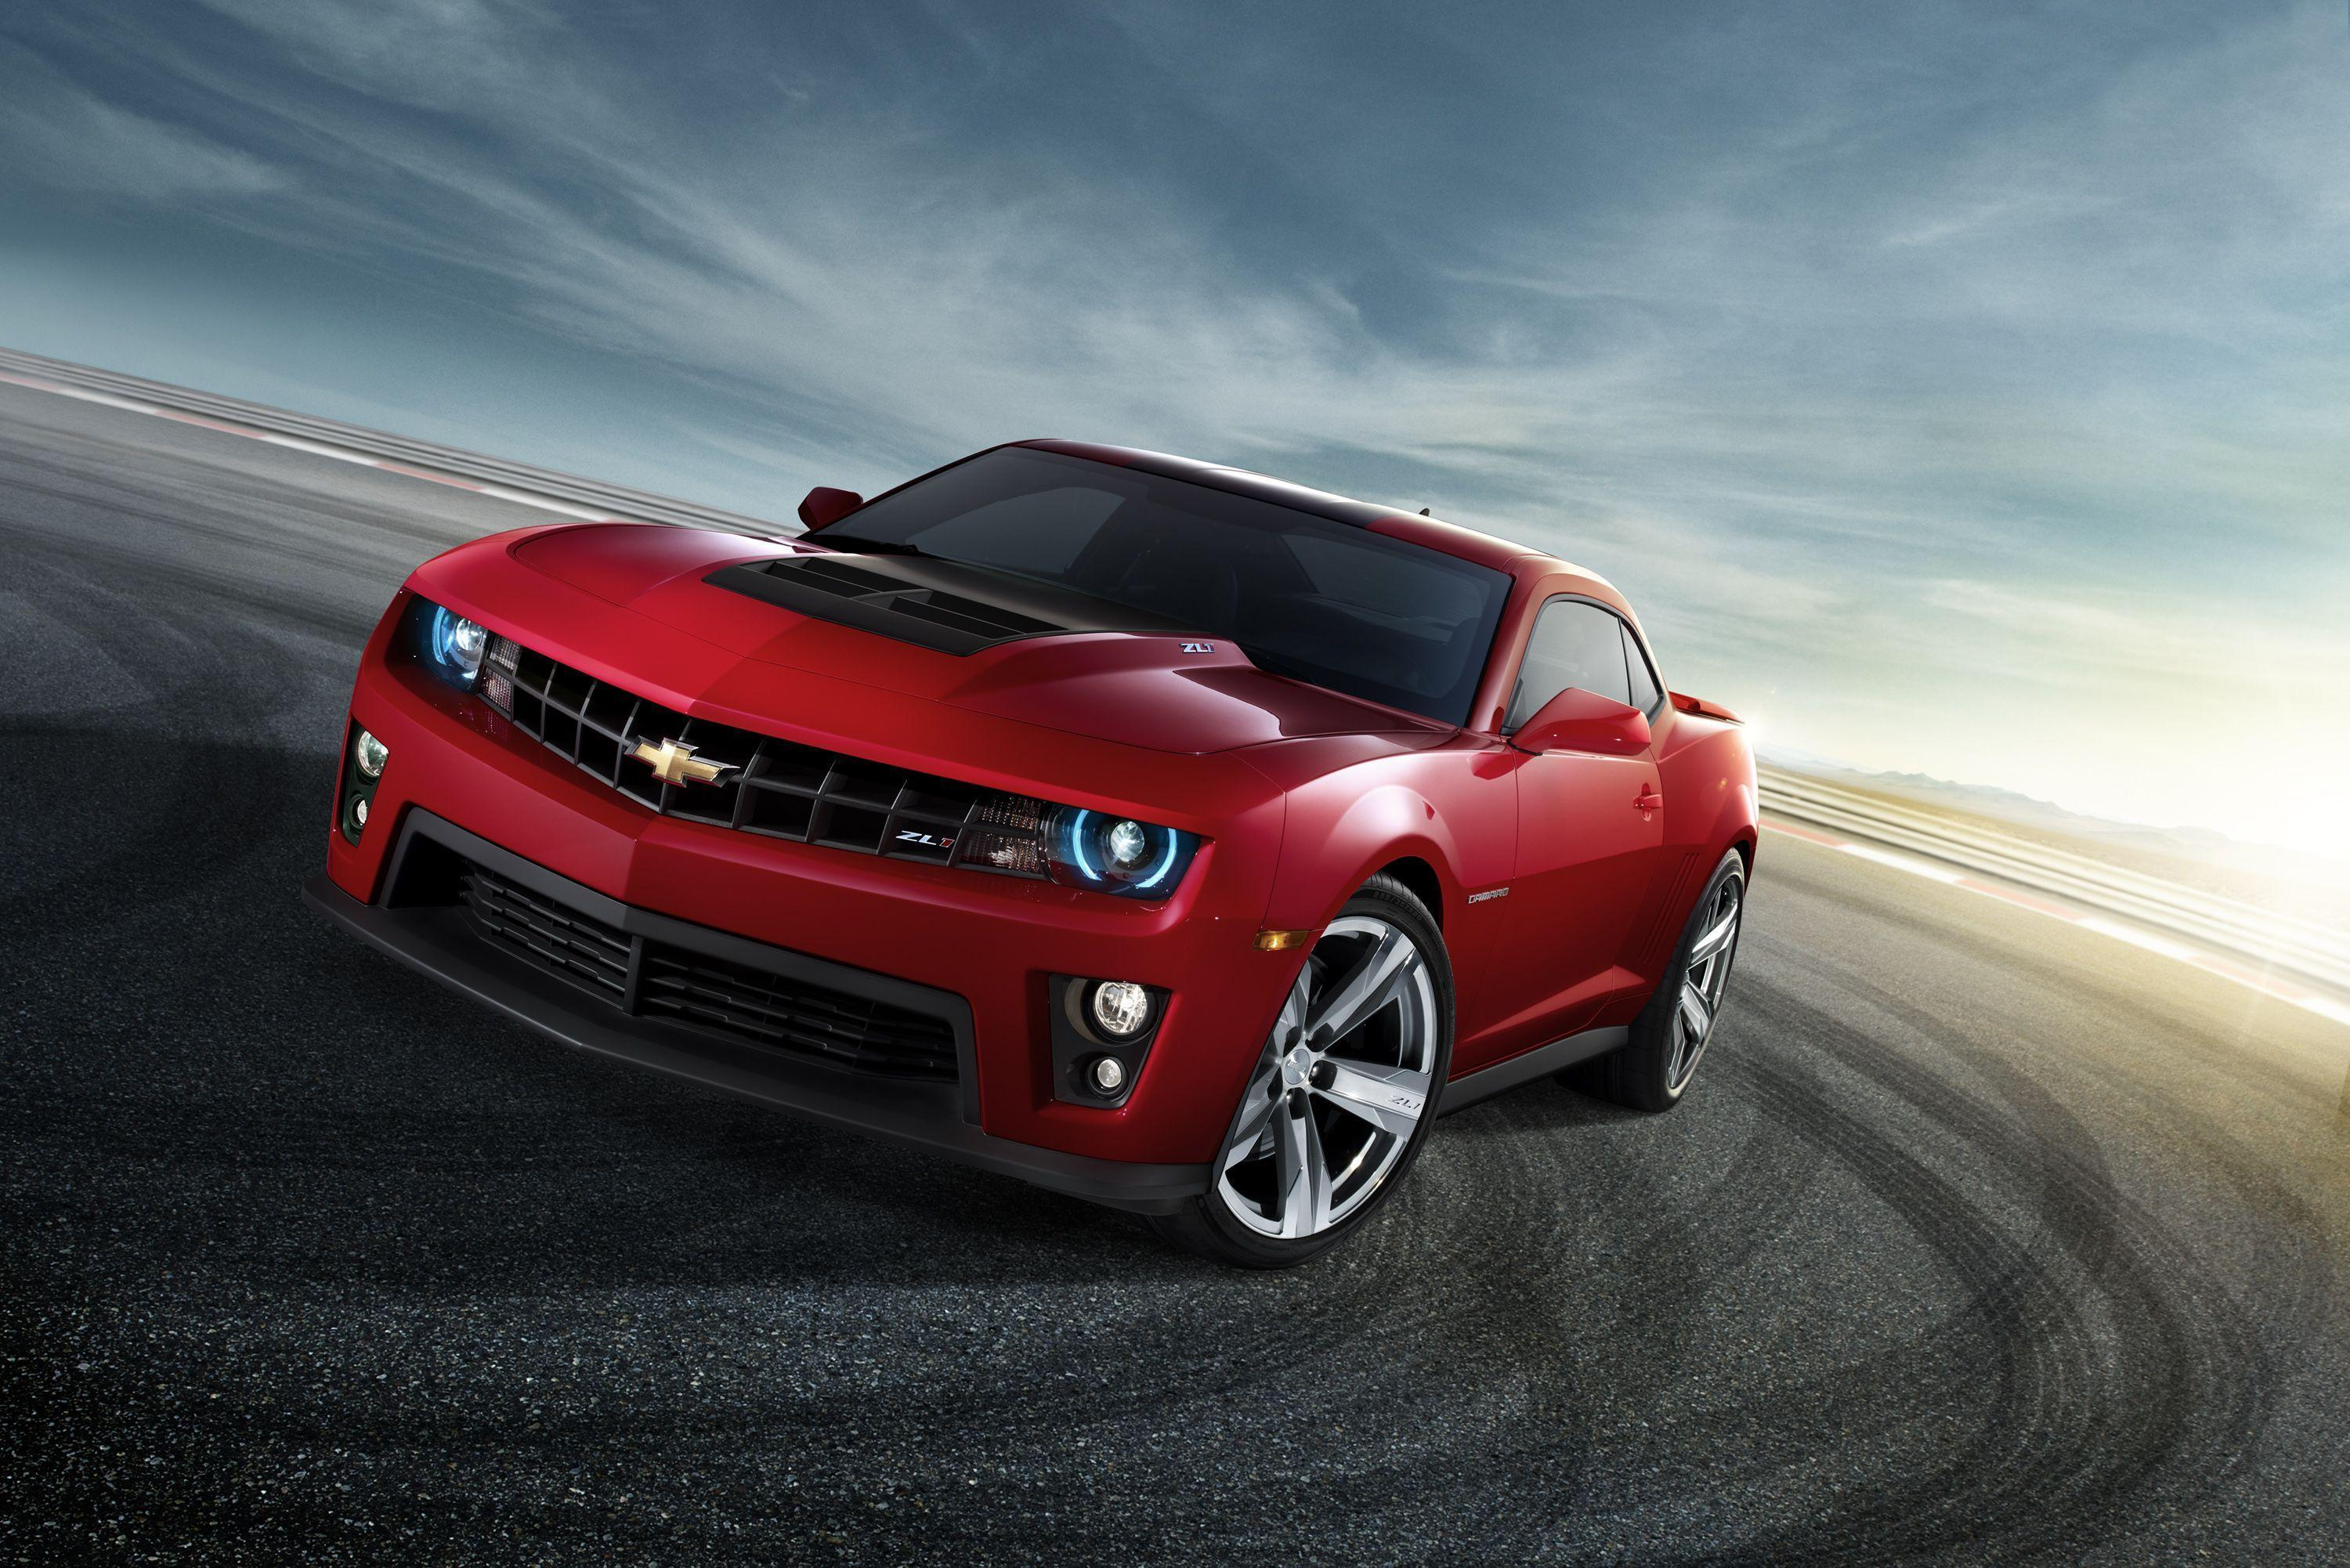 2012 Camaro ZL1 Wallpapers